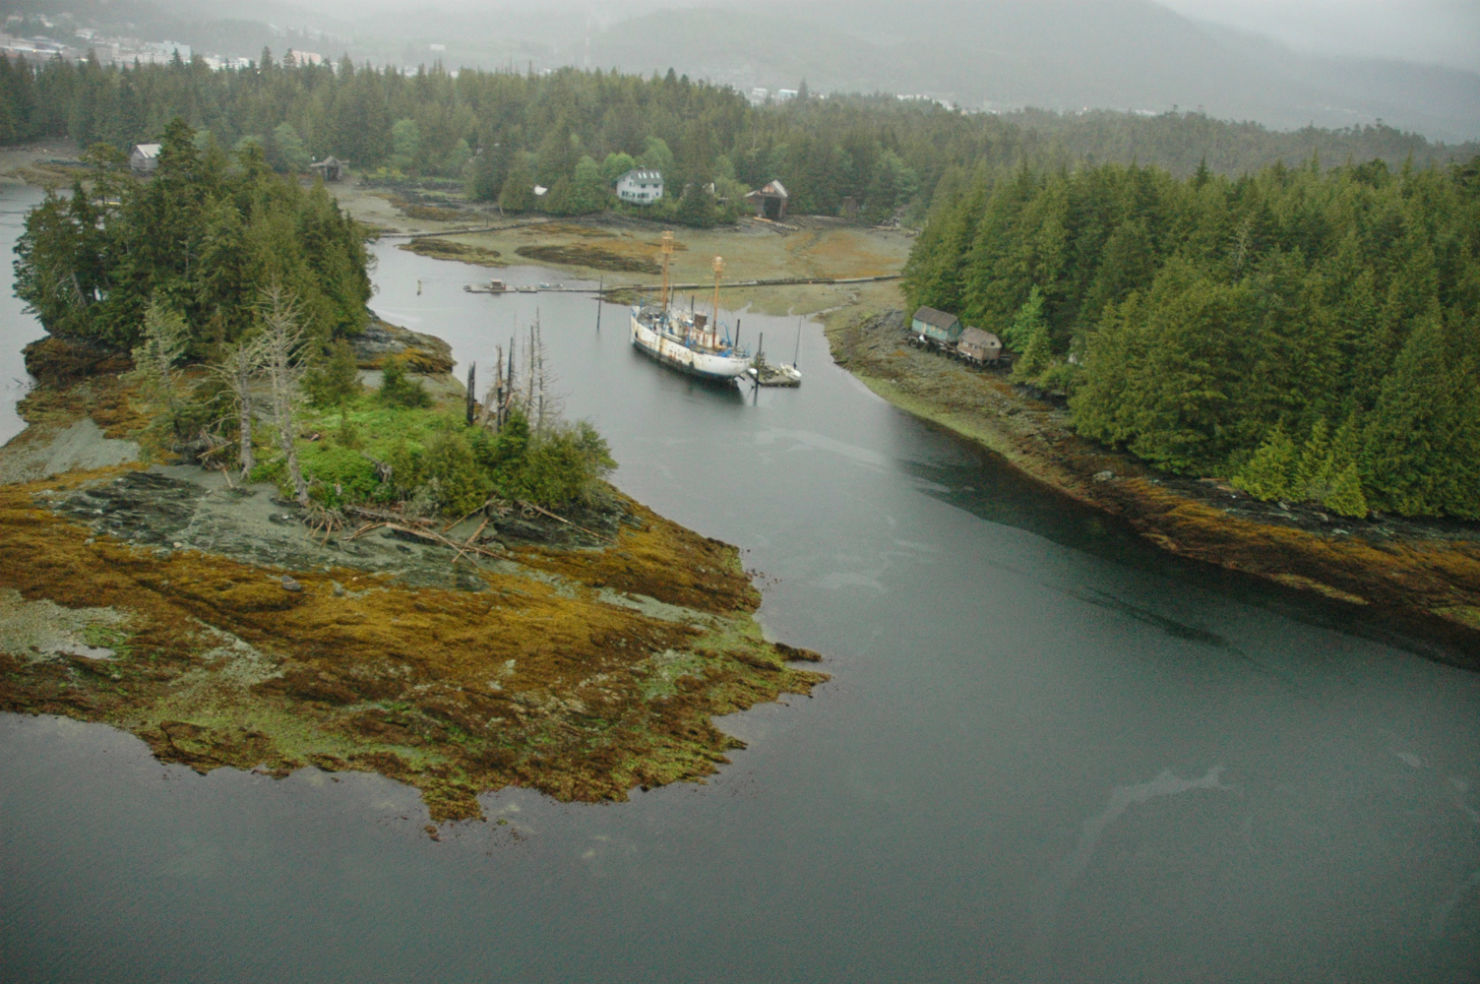 Your inside view of the Inside Passage